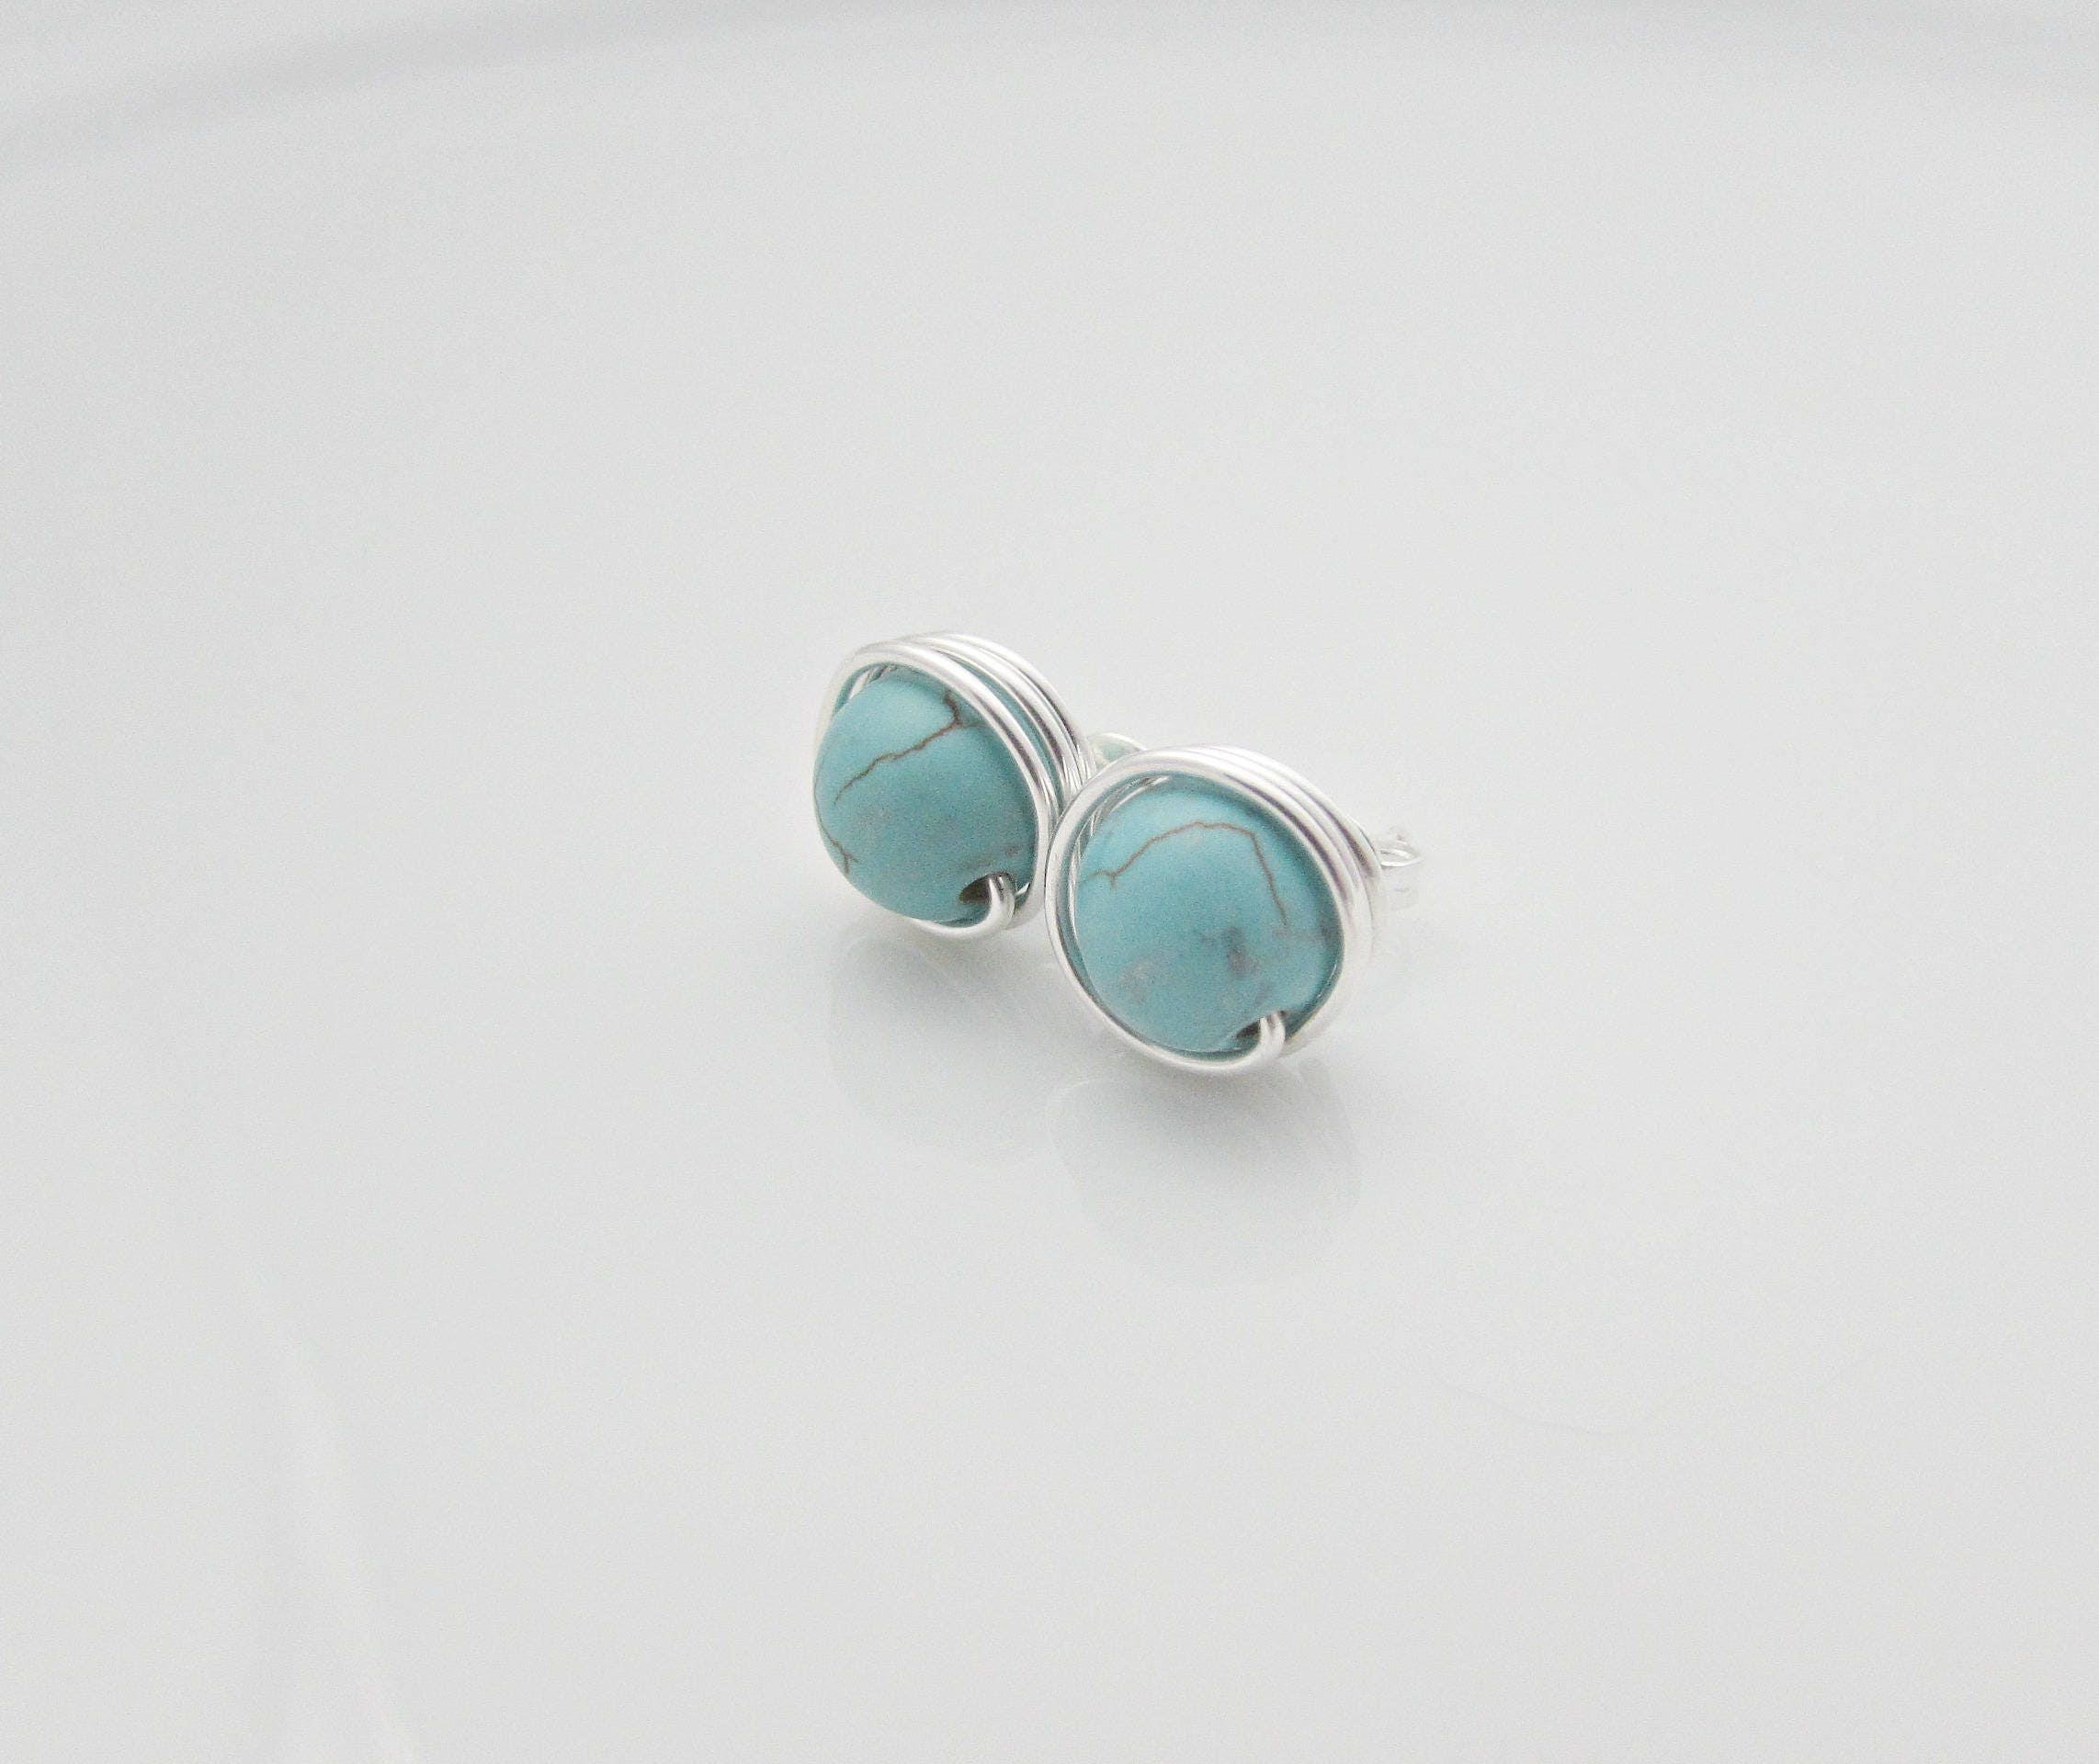 earrings drop stud for min her gifts turquoise silver shop ml